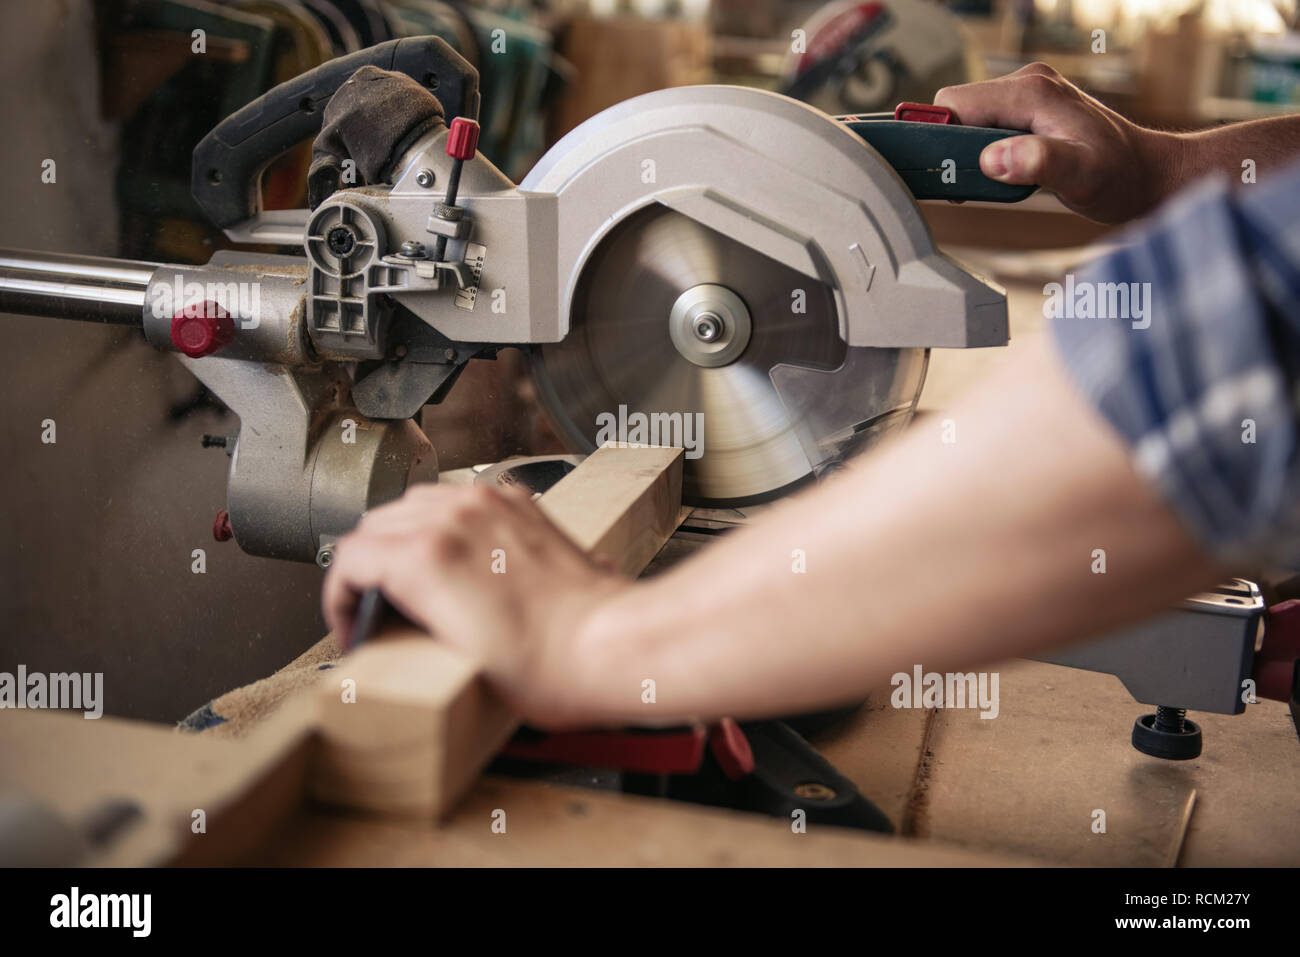 Woodworker sawing wood in his carpentry workshop - Stock Image